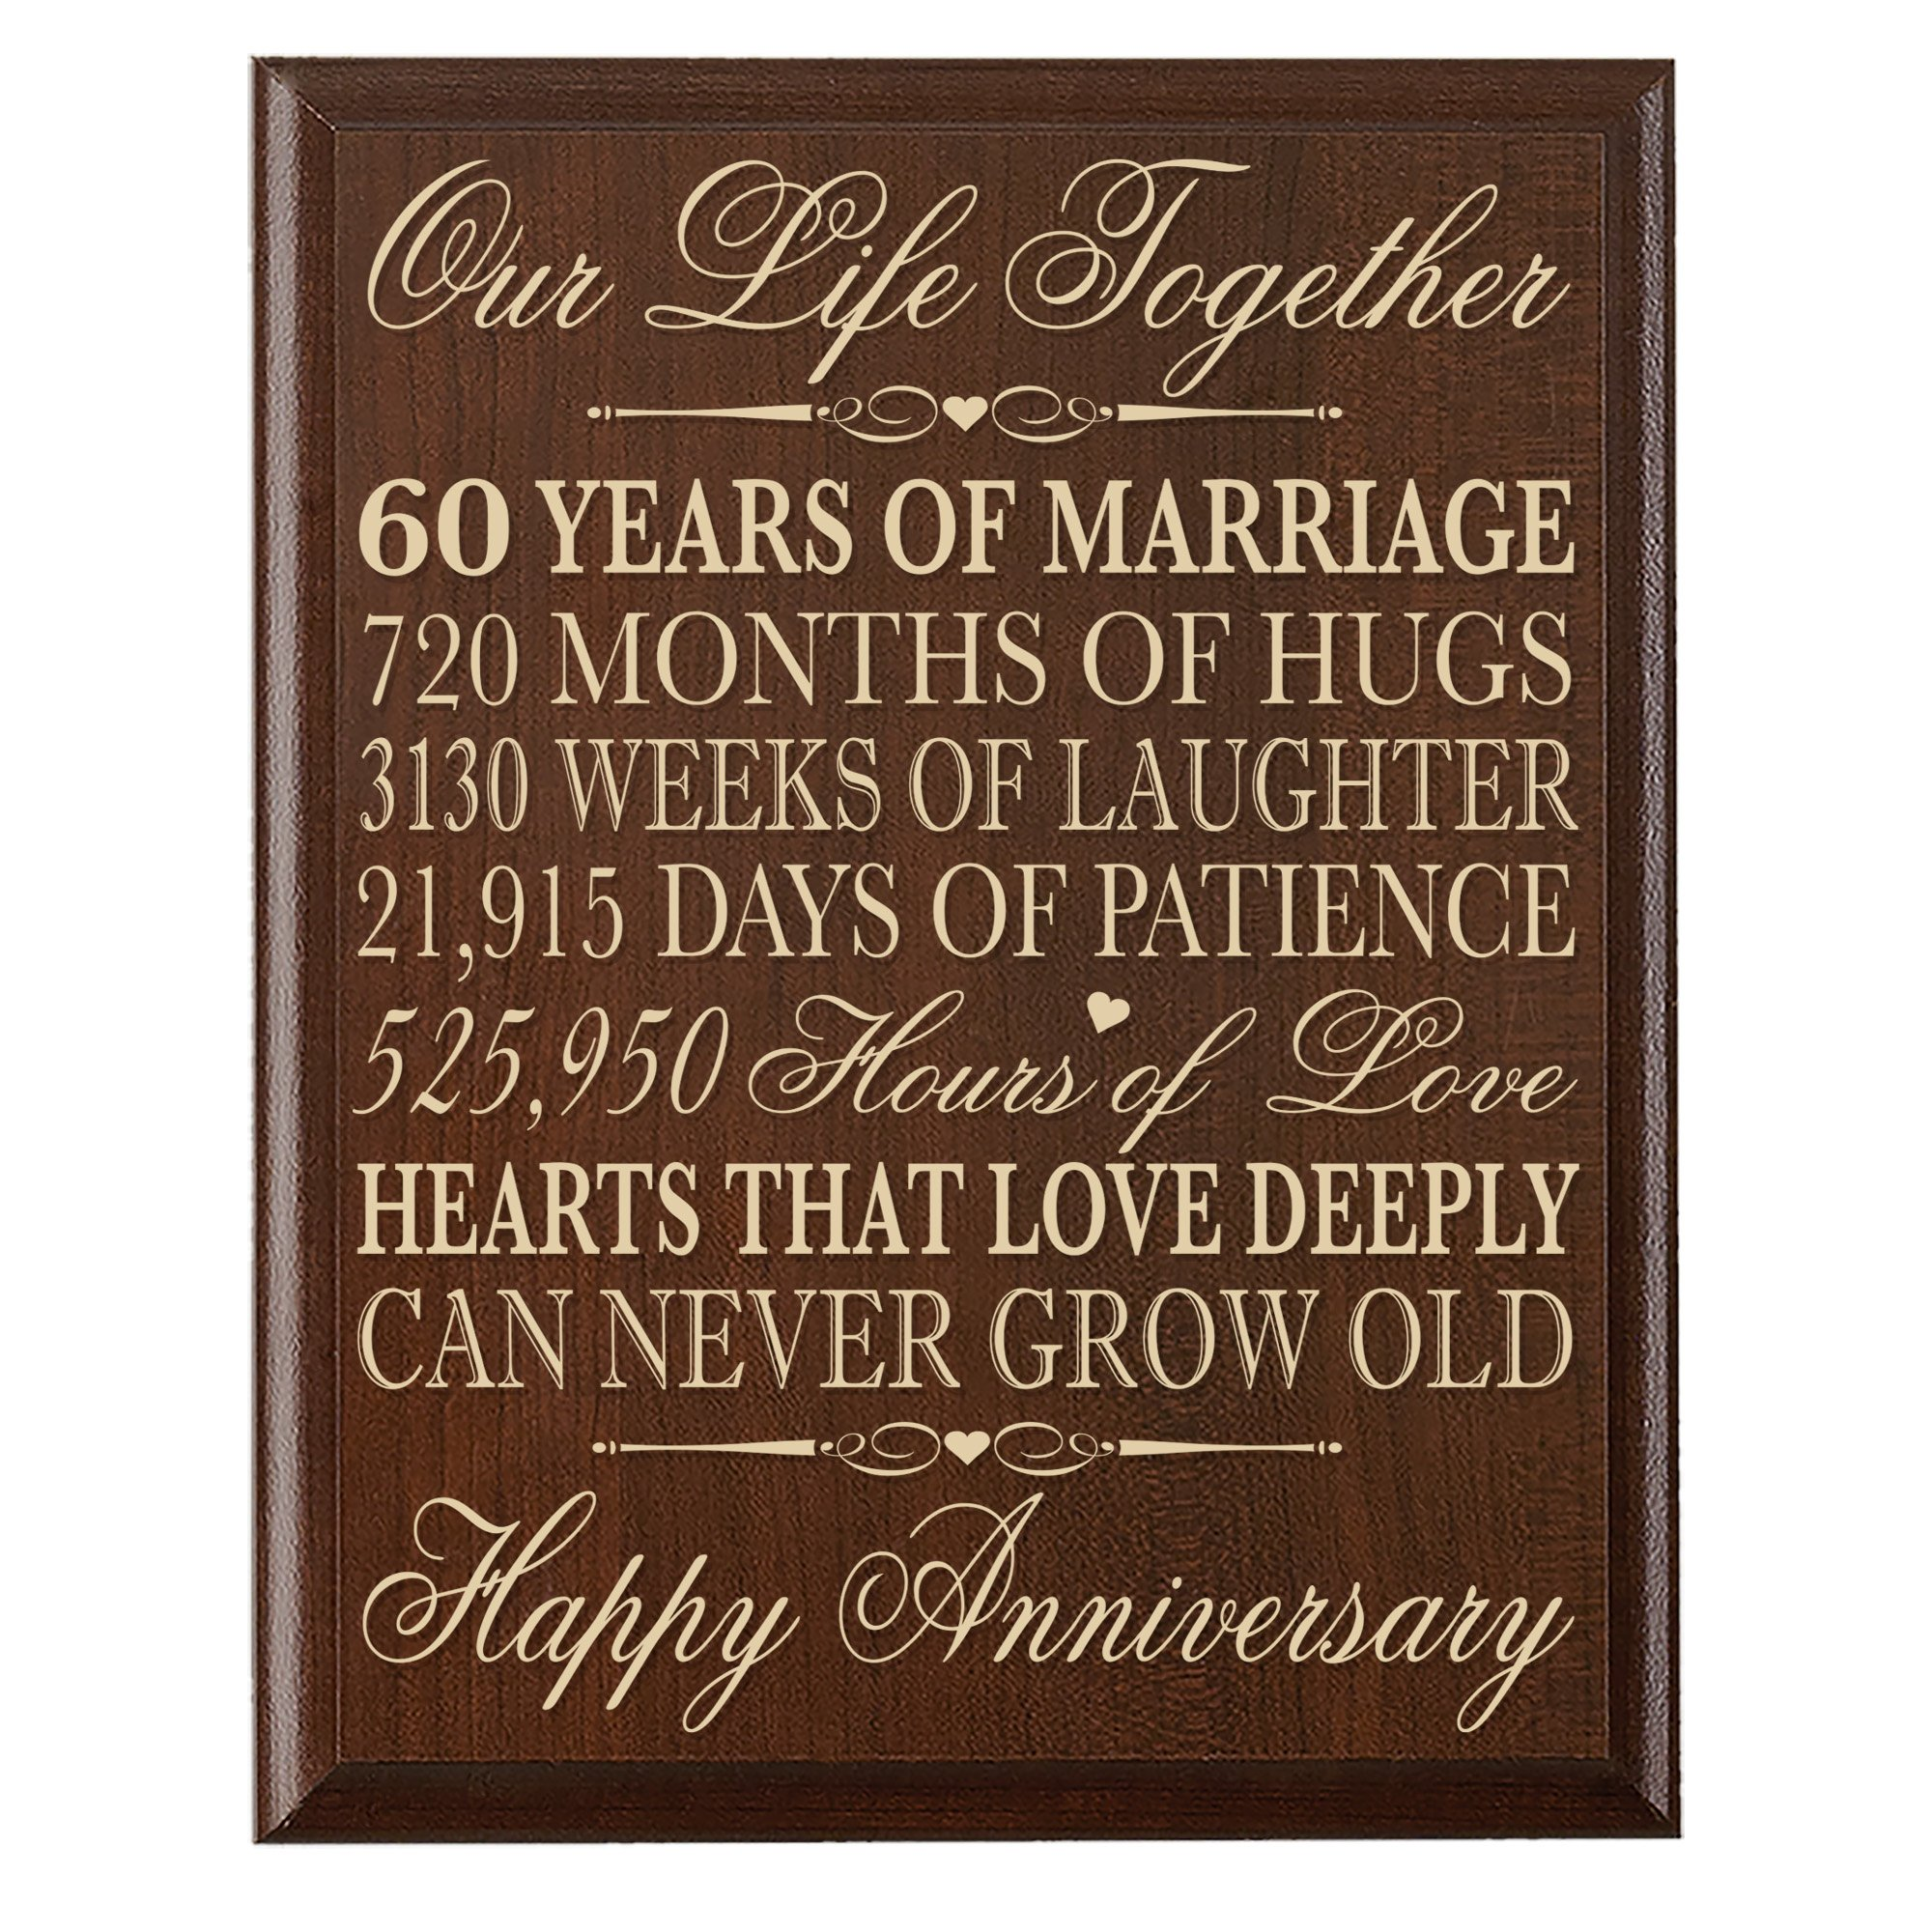 Gifts For 60th Wedding Anniversary: 60th Wedding Anniversary Wall Plaque Gifts For Couple